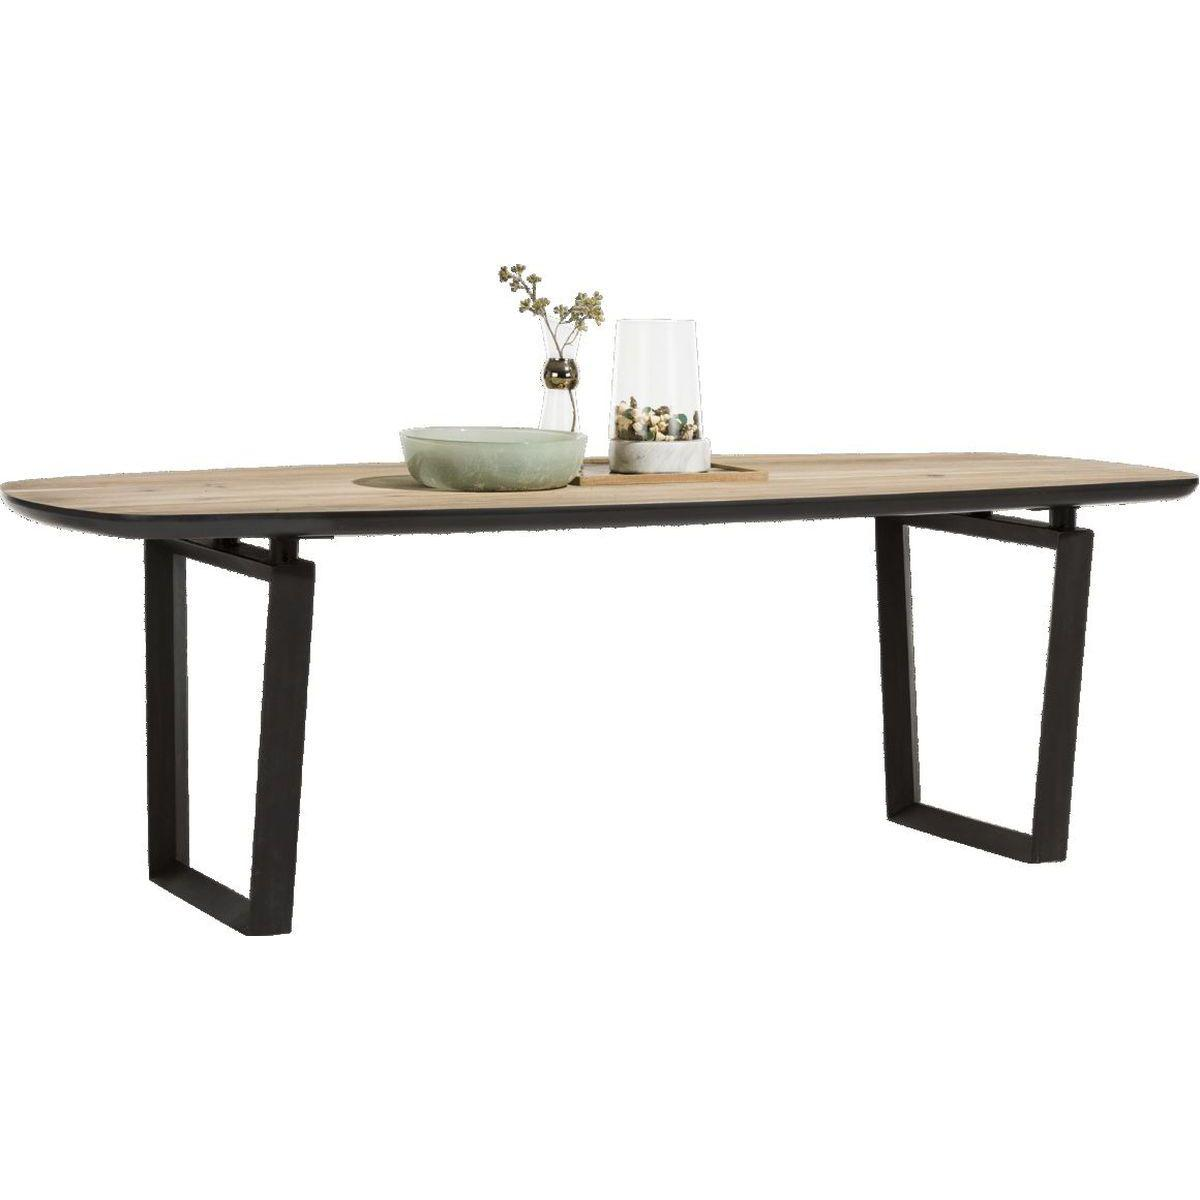 Table PRATO Henders & Hazel 240x100cm